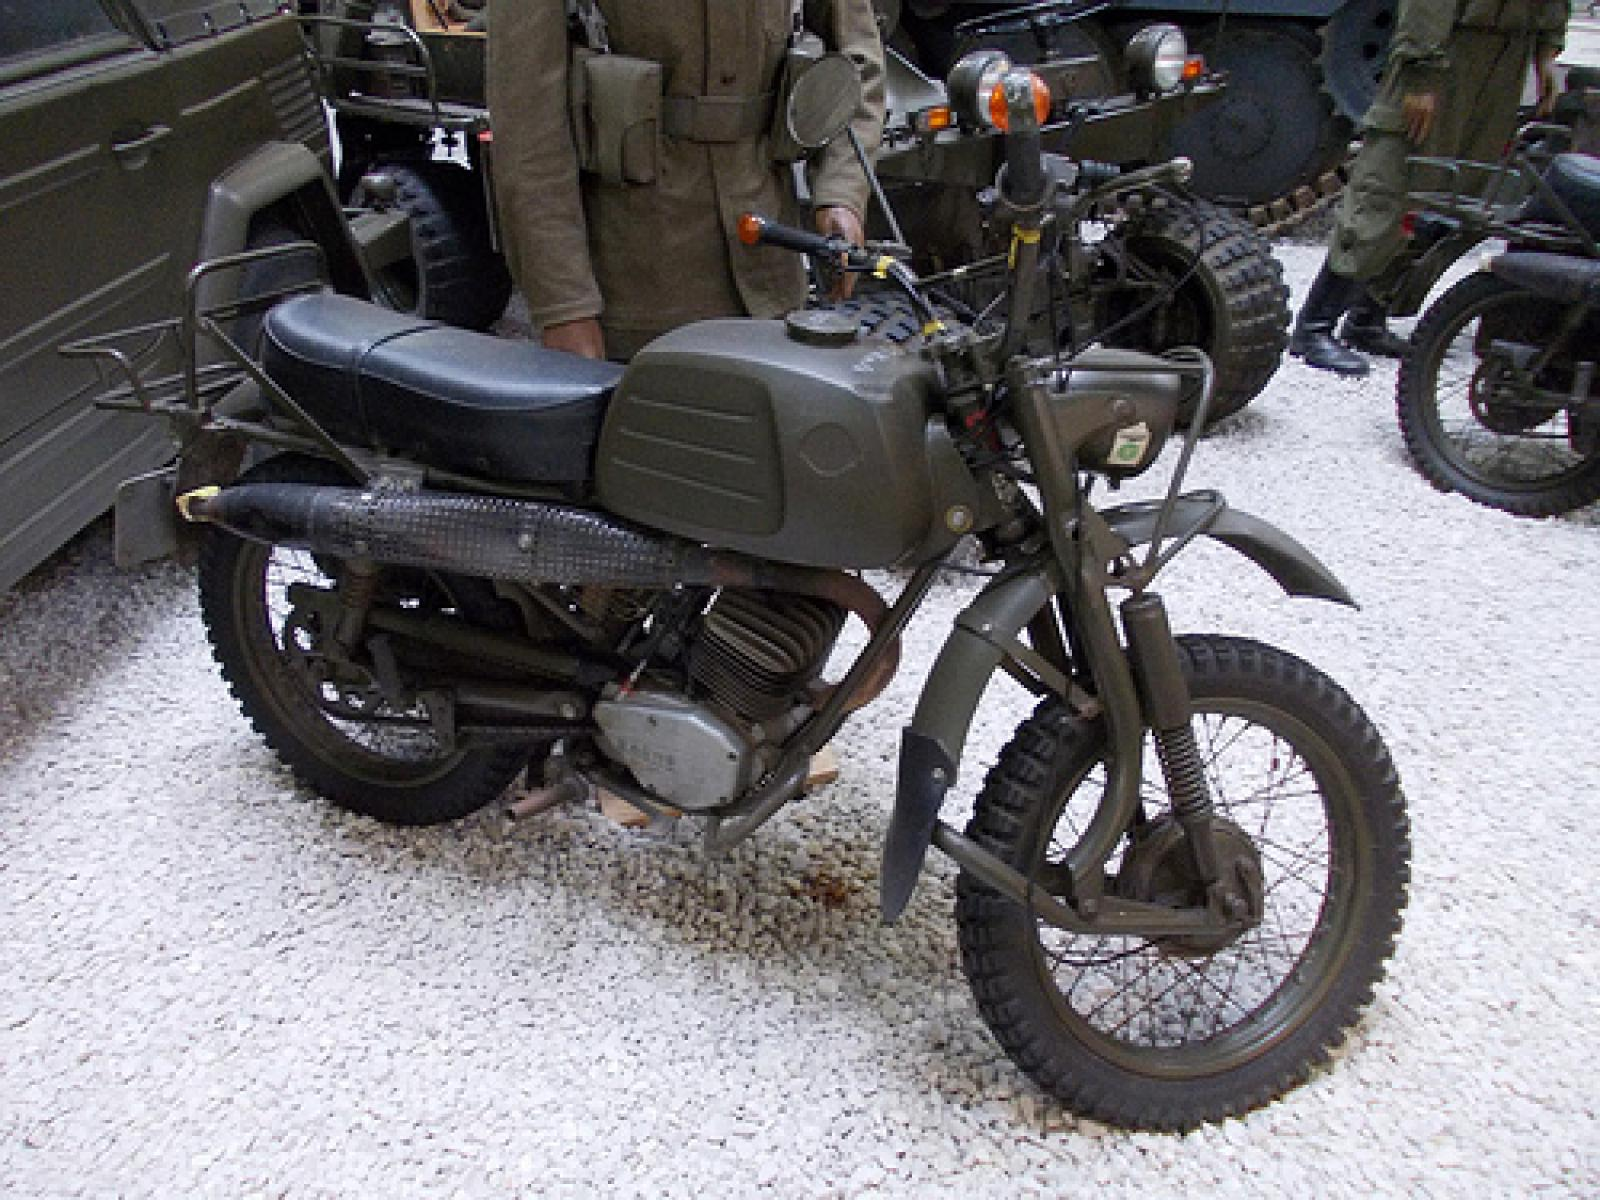 Hercules K 125 Military 1983 images #74532